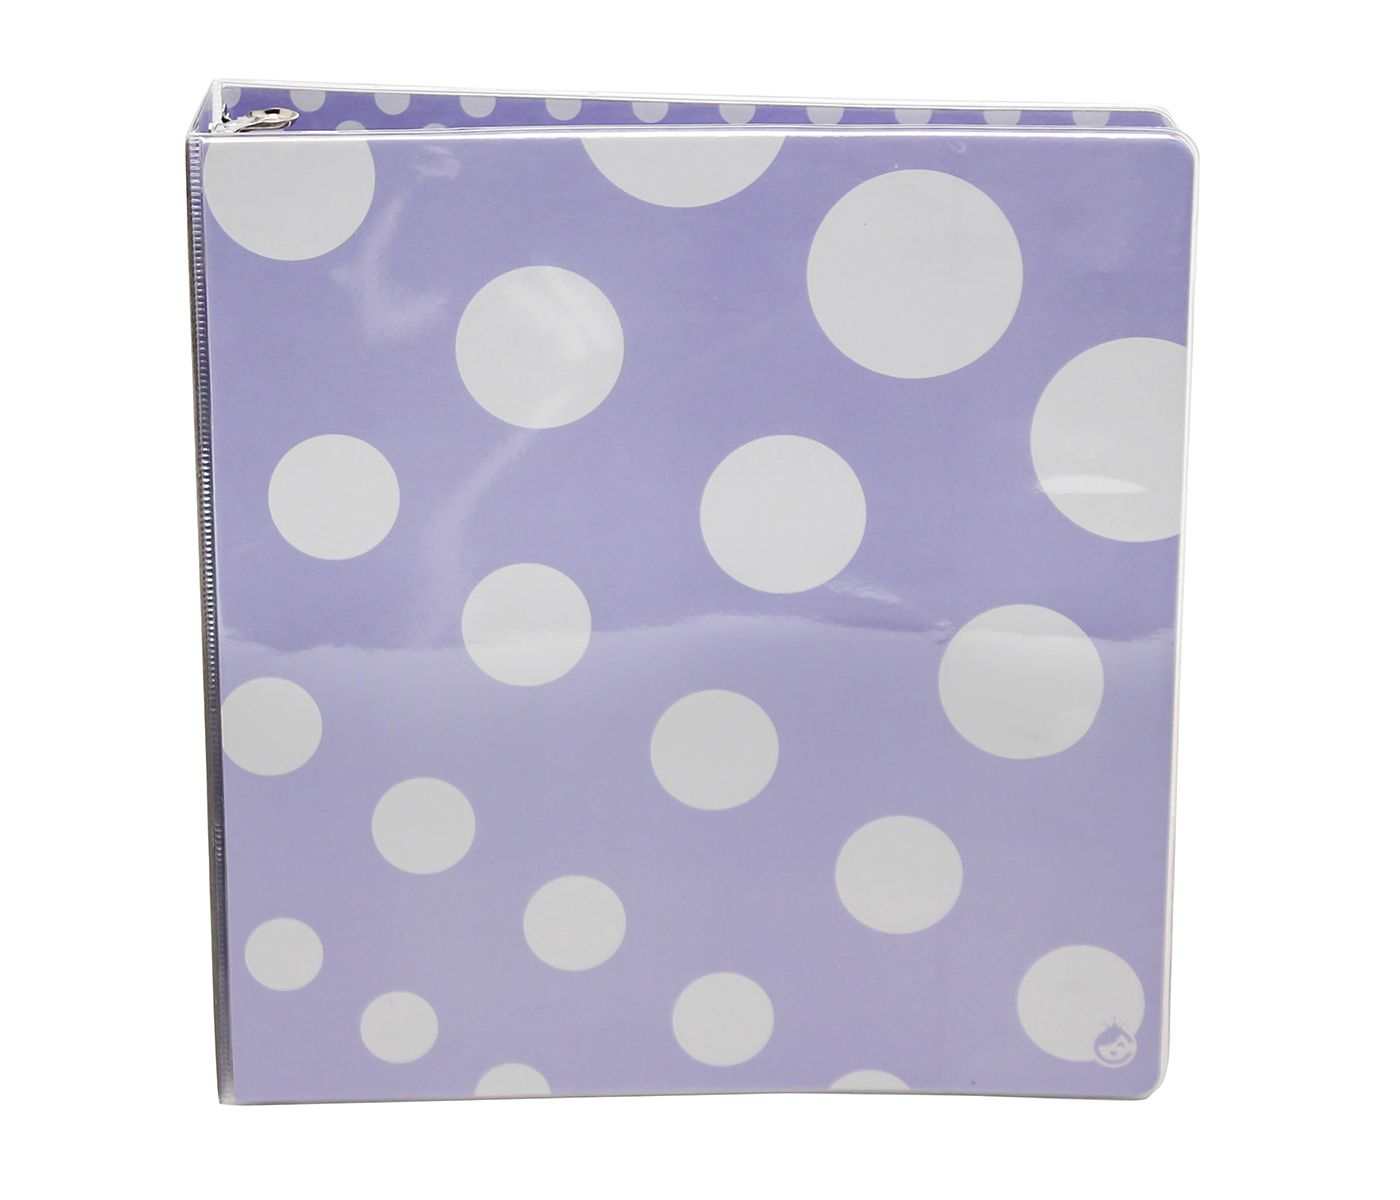 Studio C Pattern Play Collection 2 Quot Binder At Select